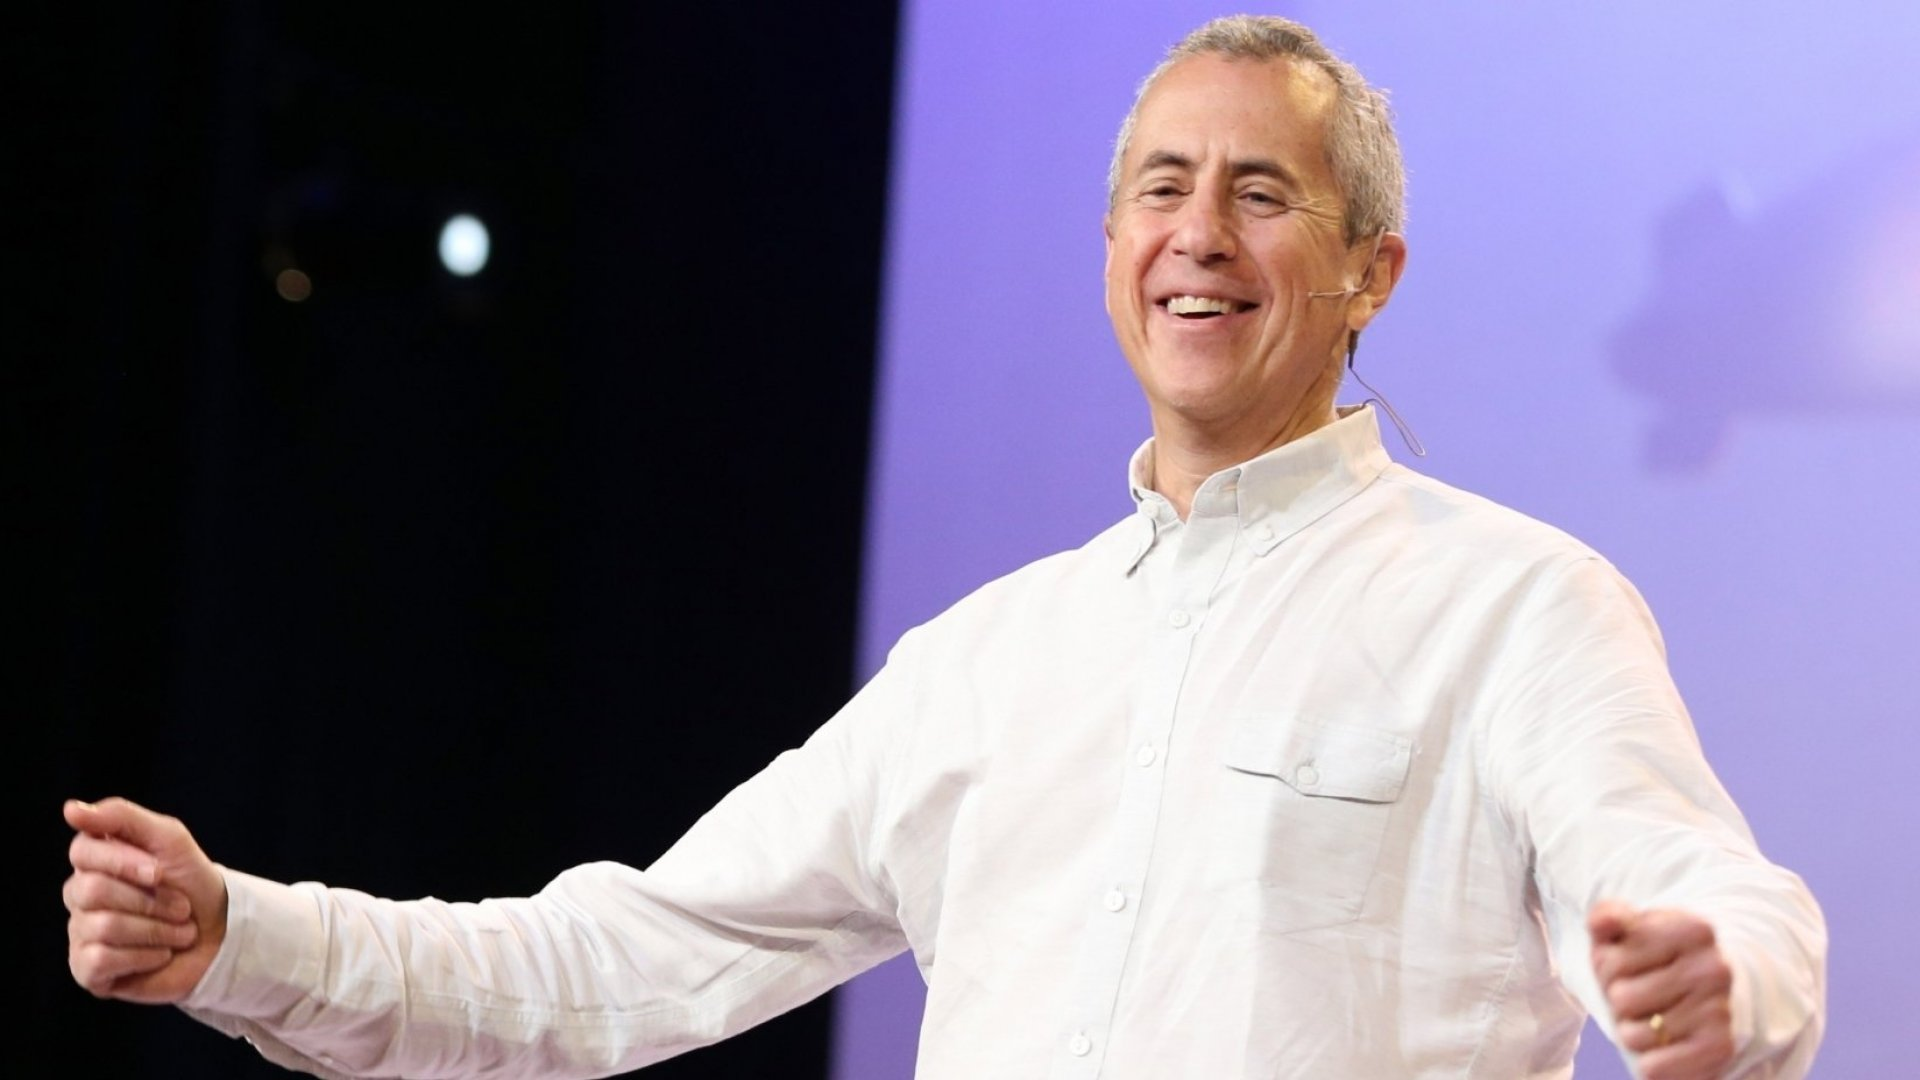 Danny Meyer, CEO, Union Square Hospitality Group.